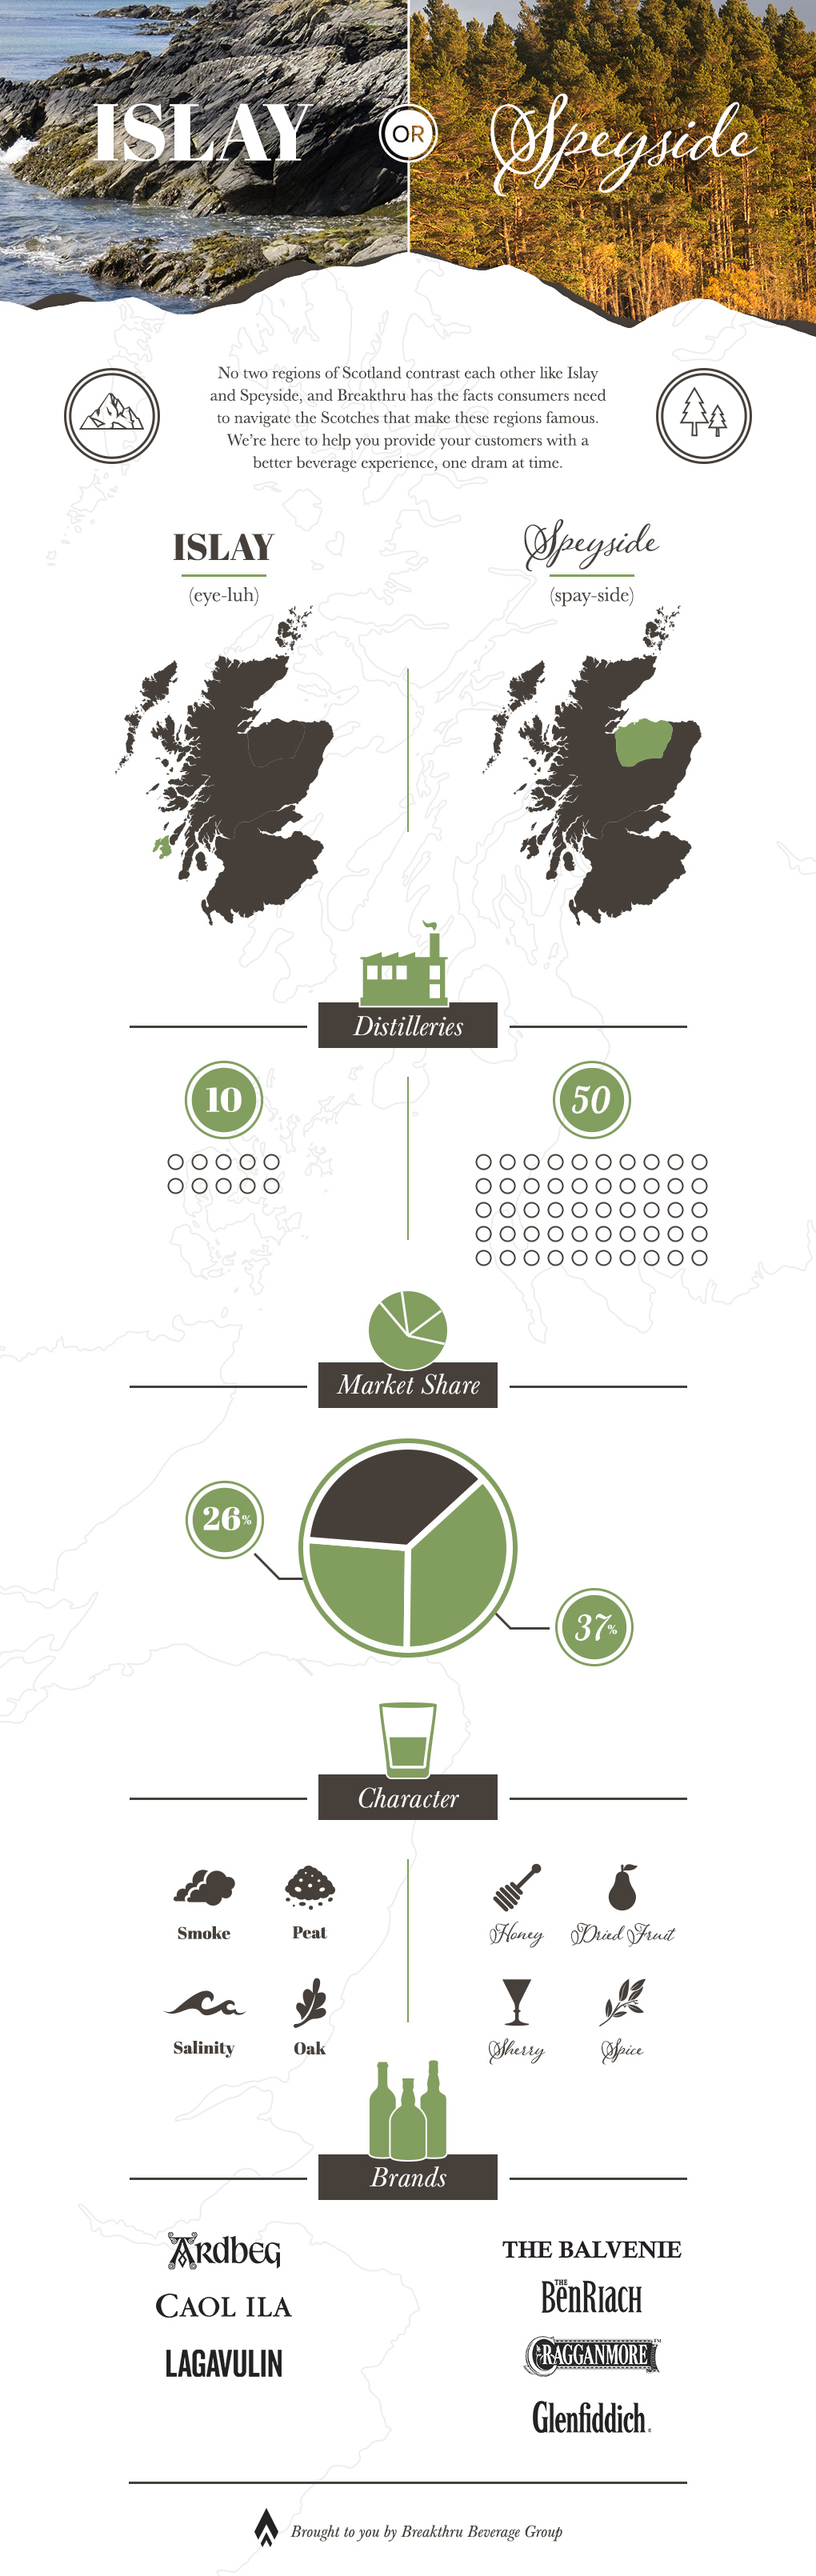 CO - Islay or Speyside Infographic